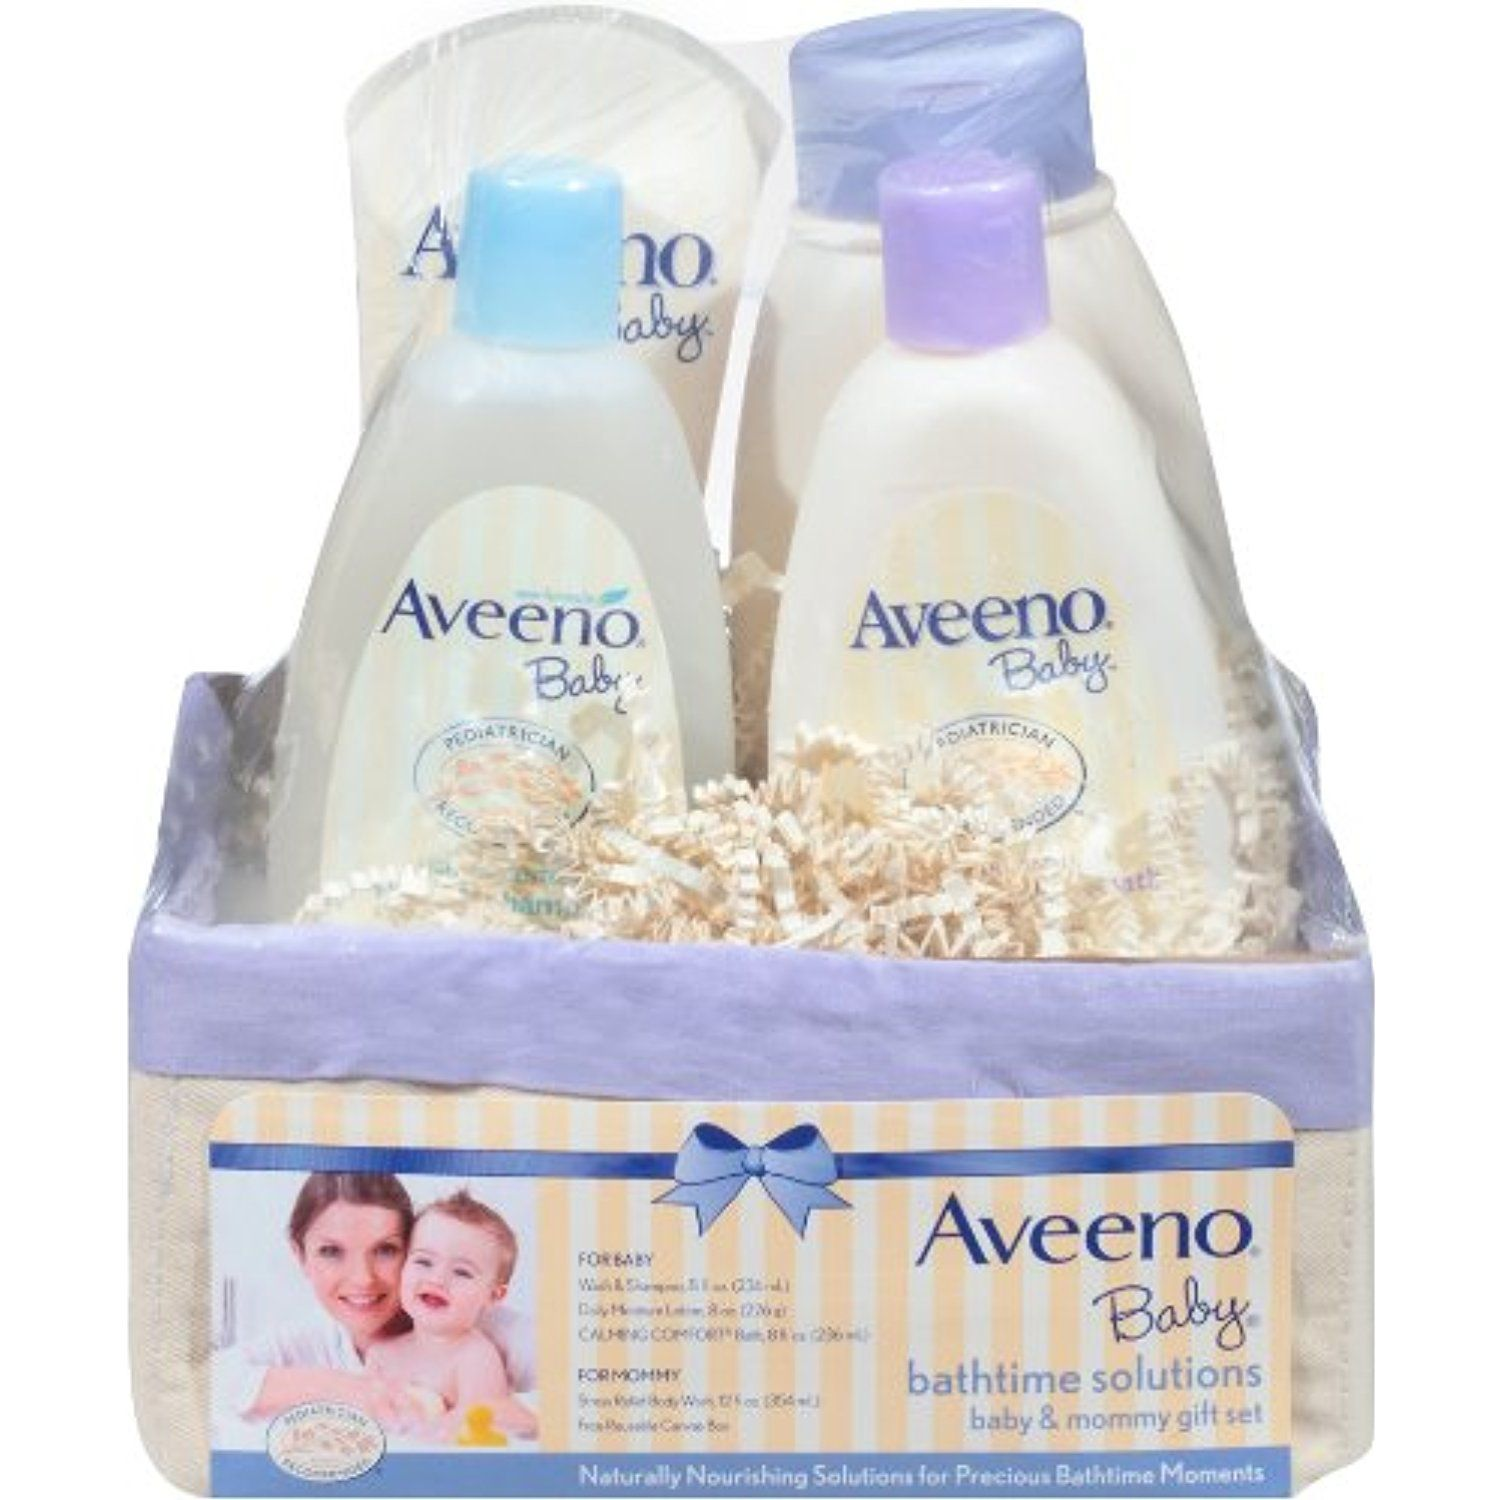 Aveeno Baby Daily Bath Time Solutions Gift Set To Prevent Dry Skin ...